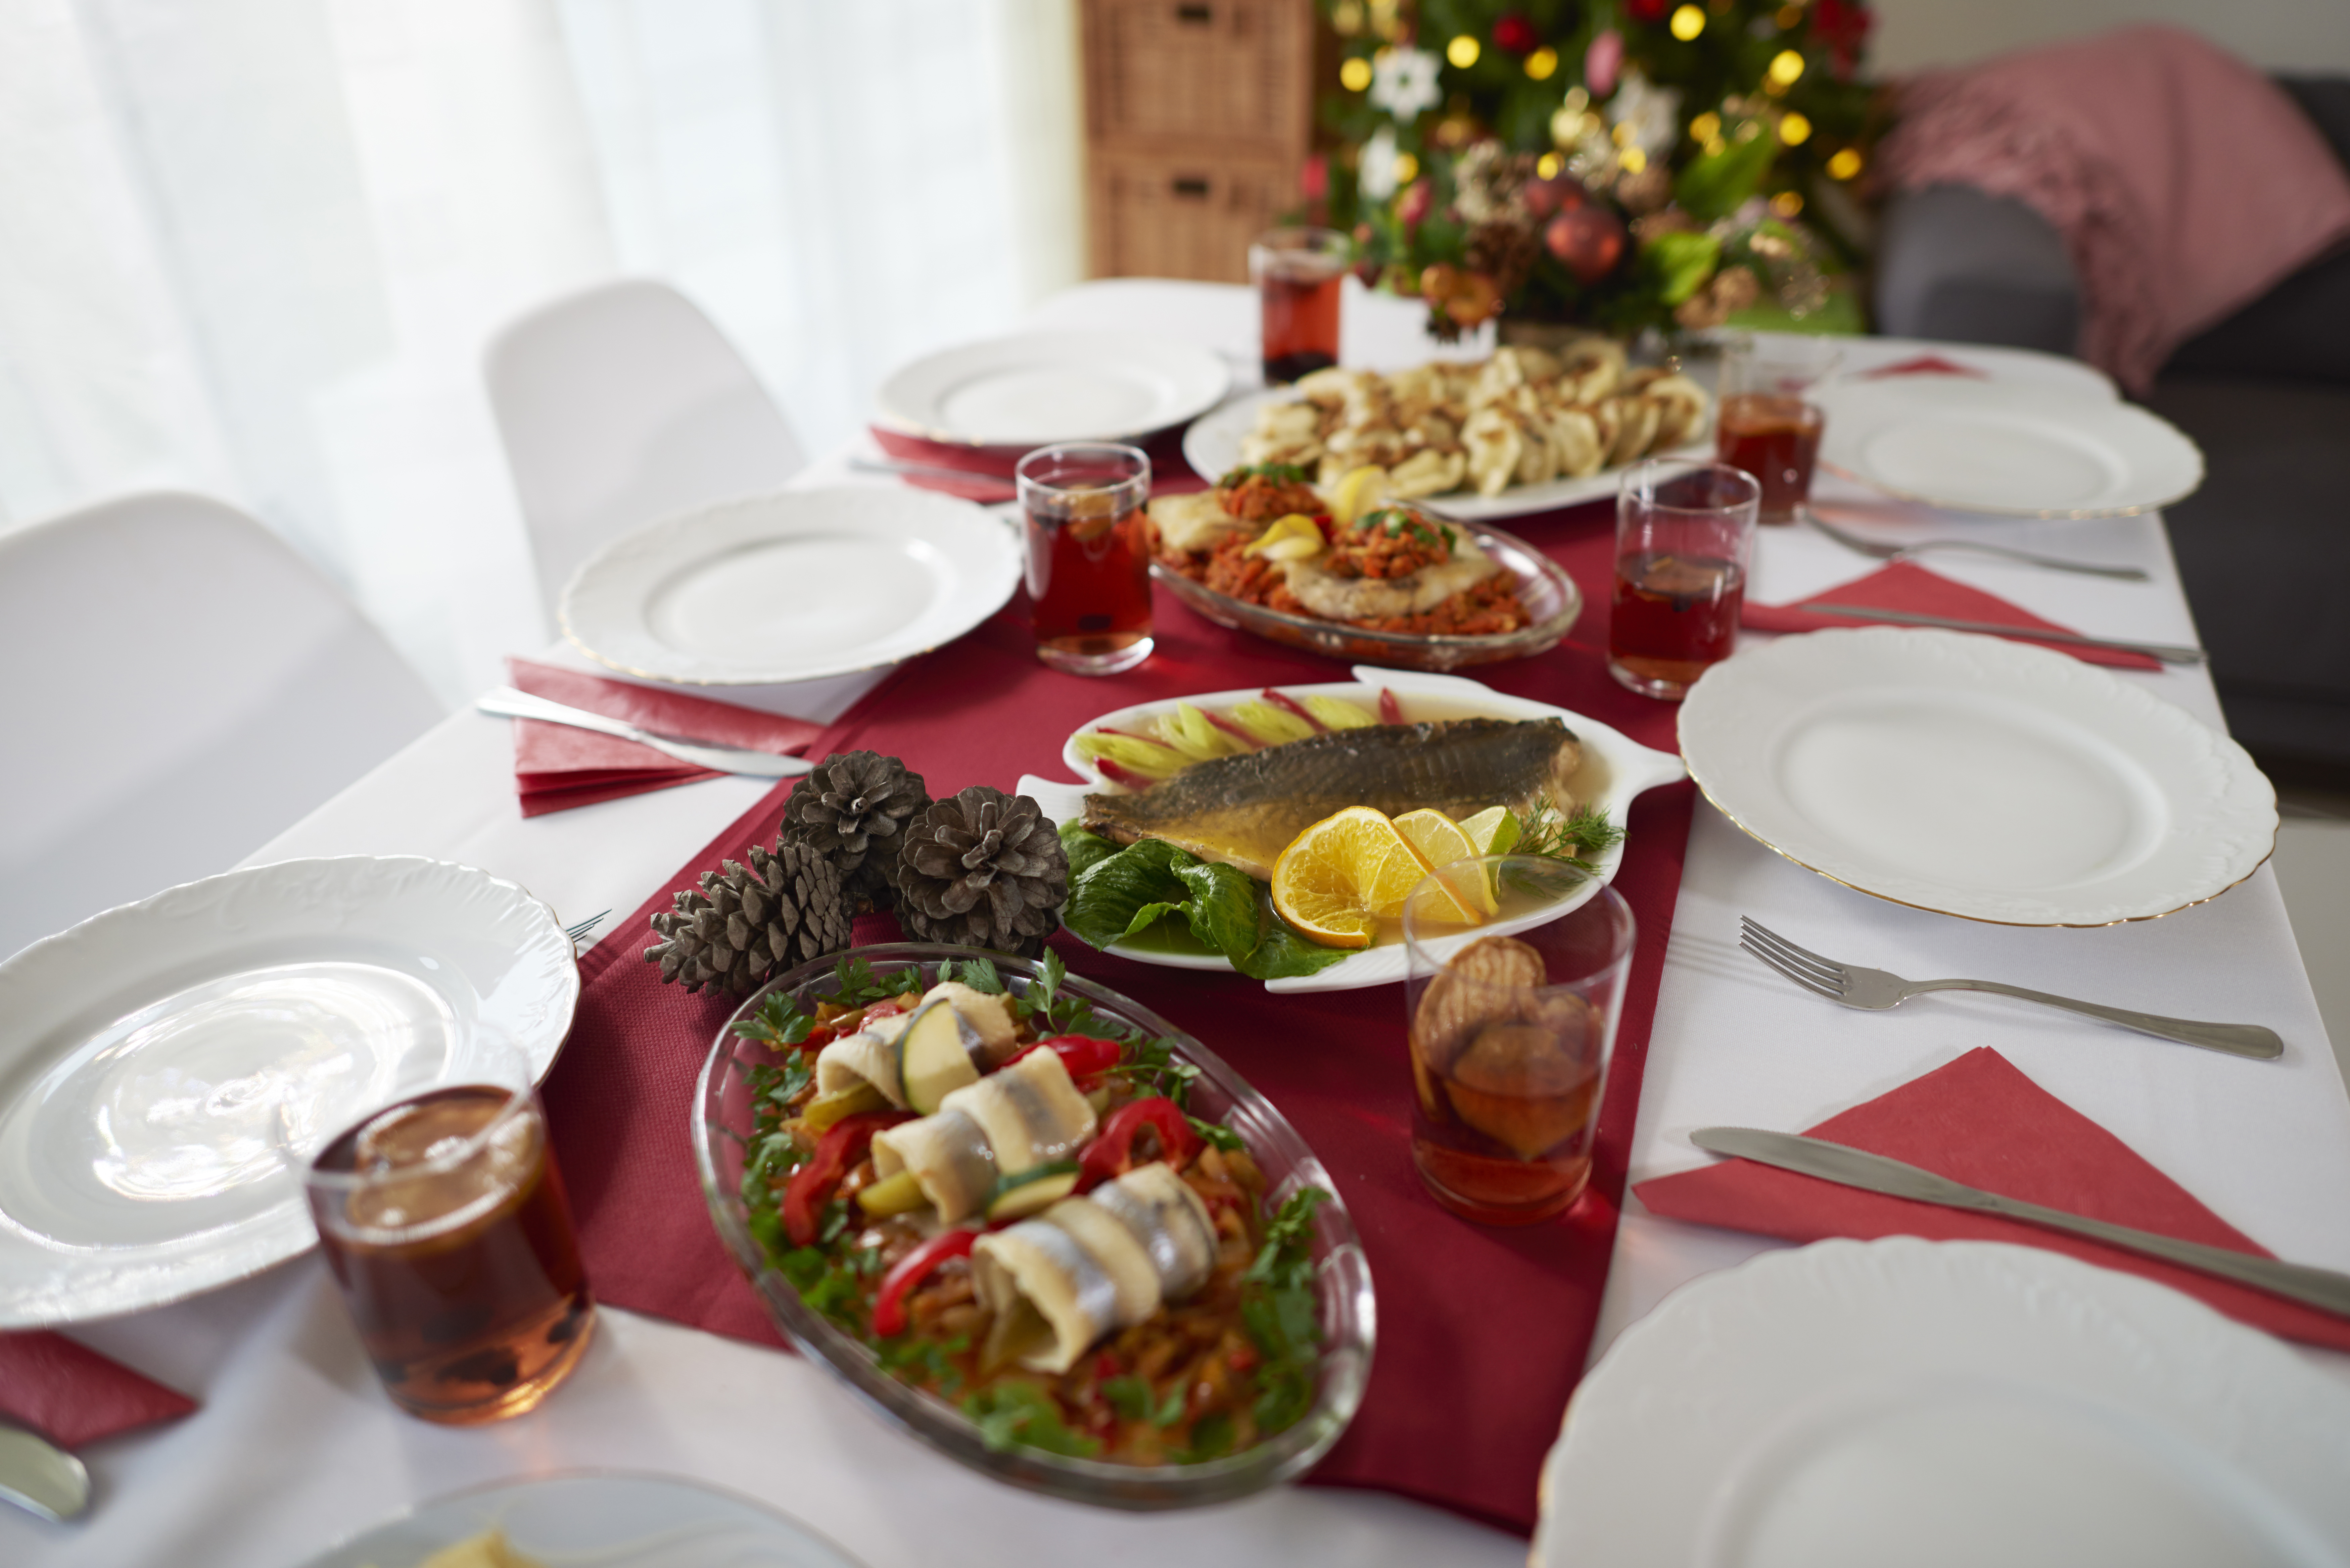 christmas-table-is-waiting-for-the-quests-9SPR2H2